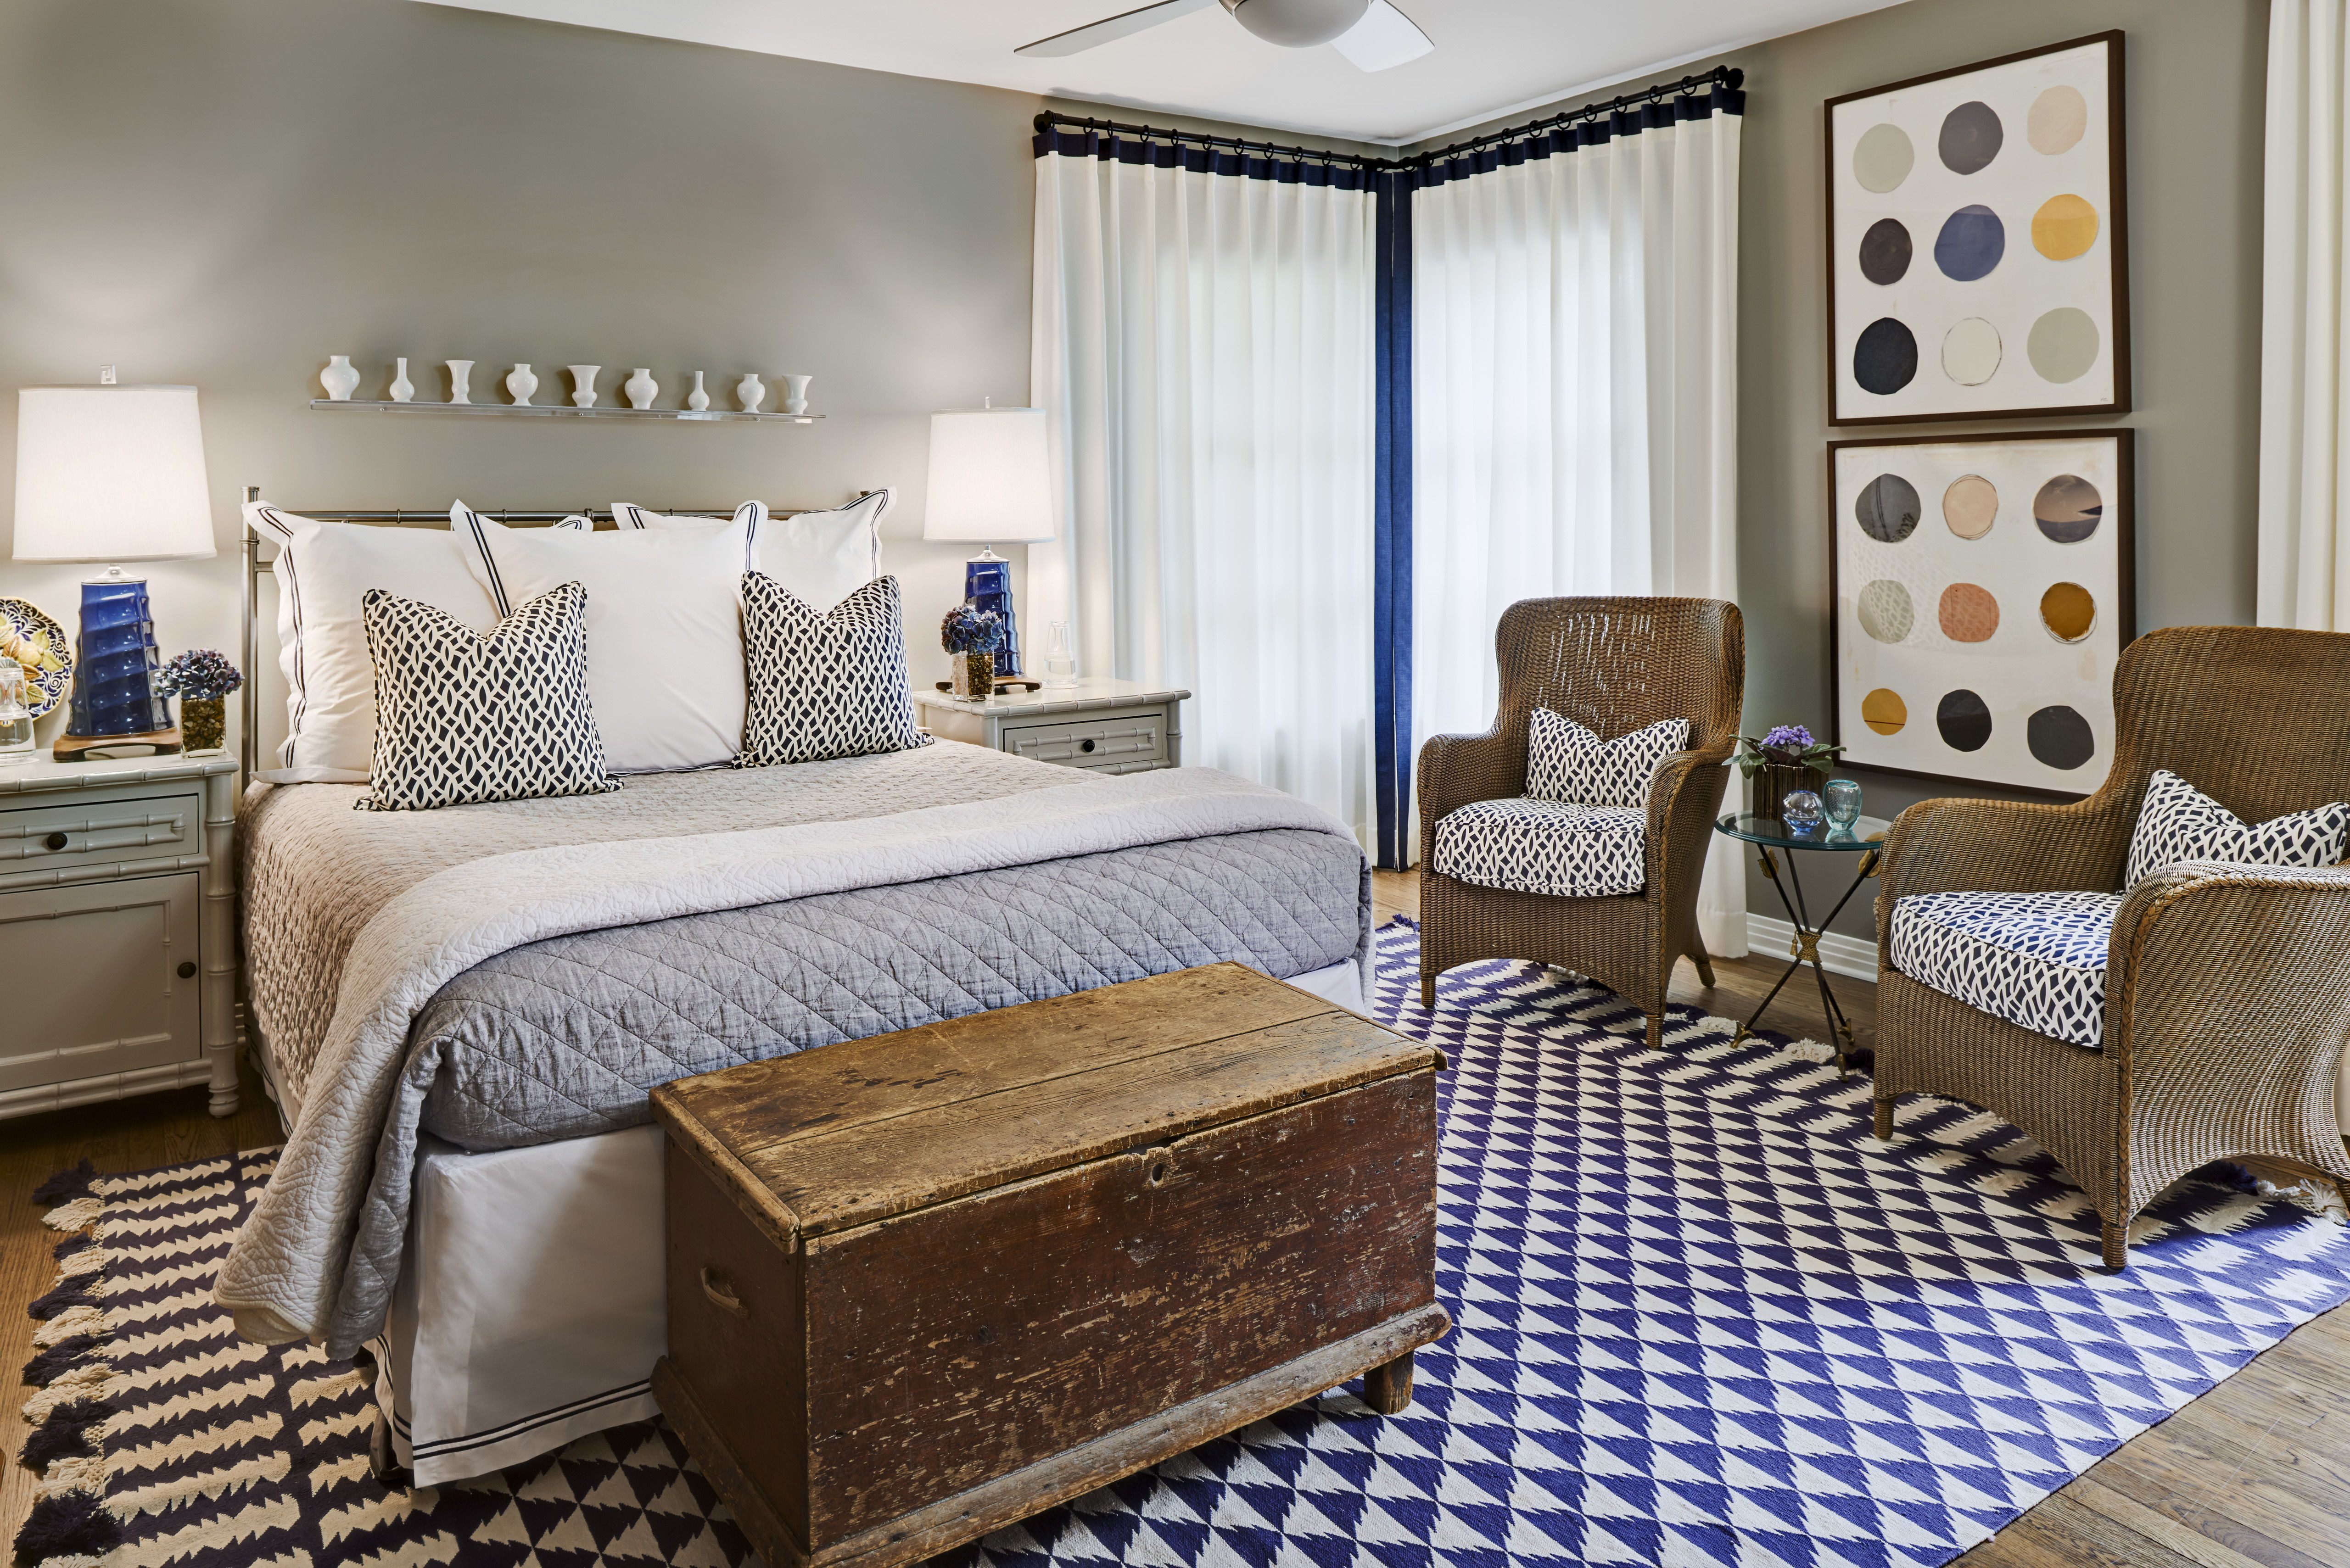 Bedroom with blue and white area rug.